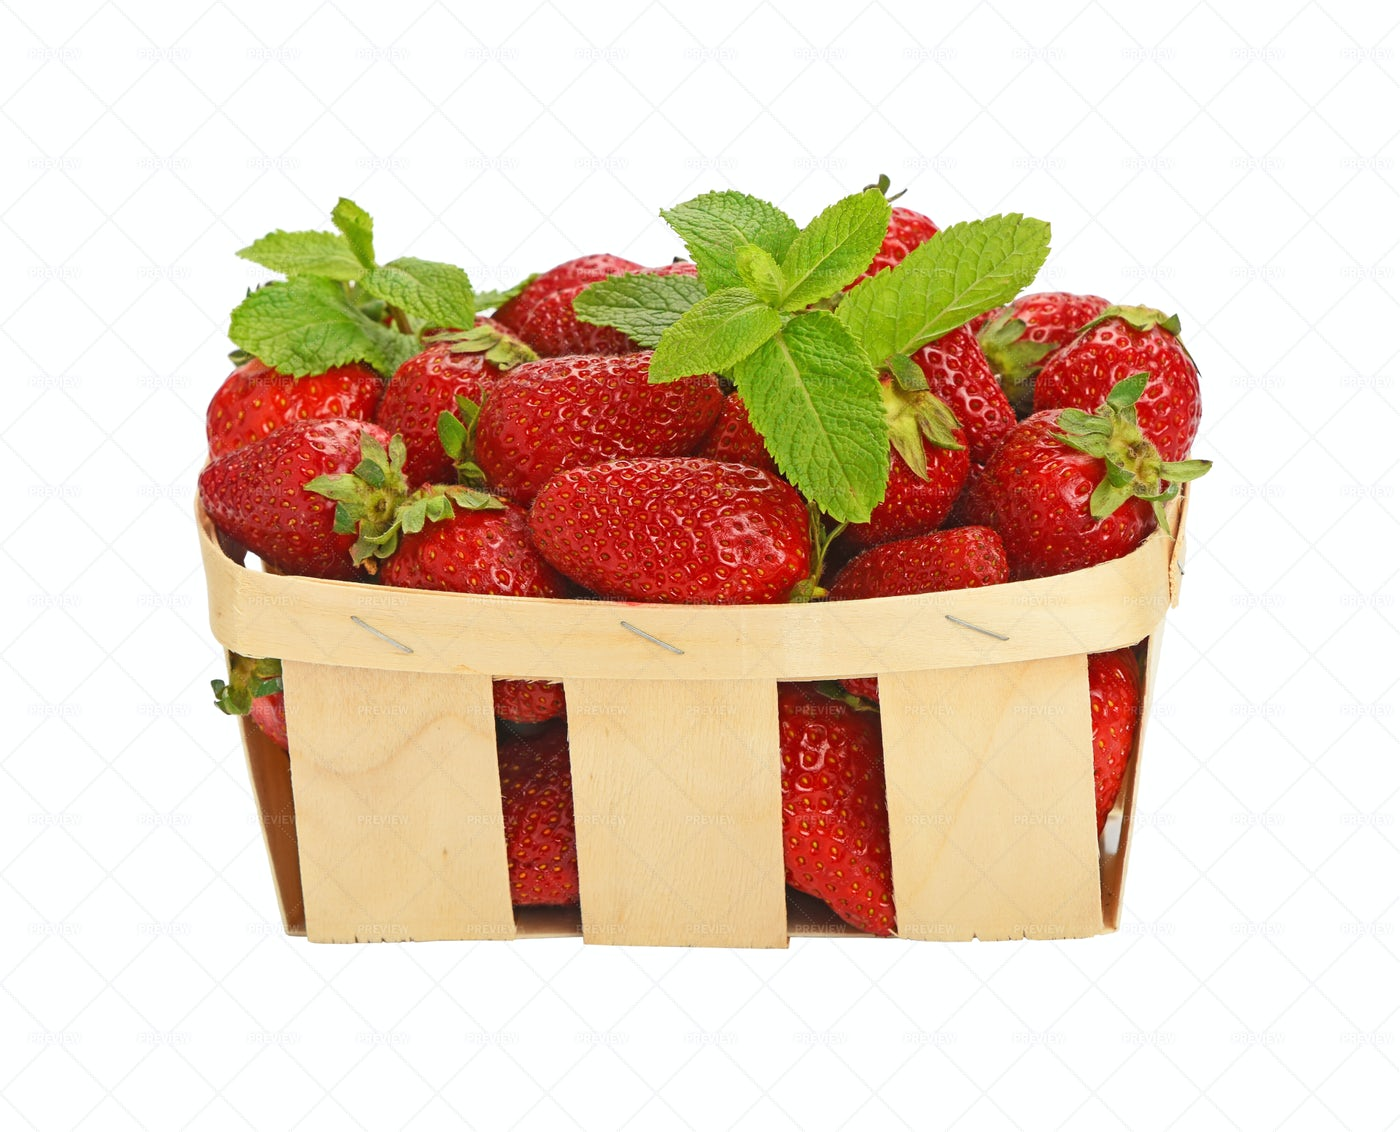 Strawberries In A Wooden Basket: Stock Photos